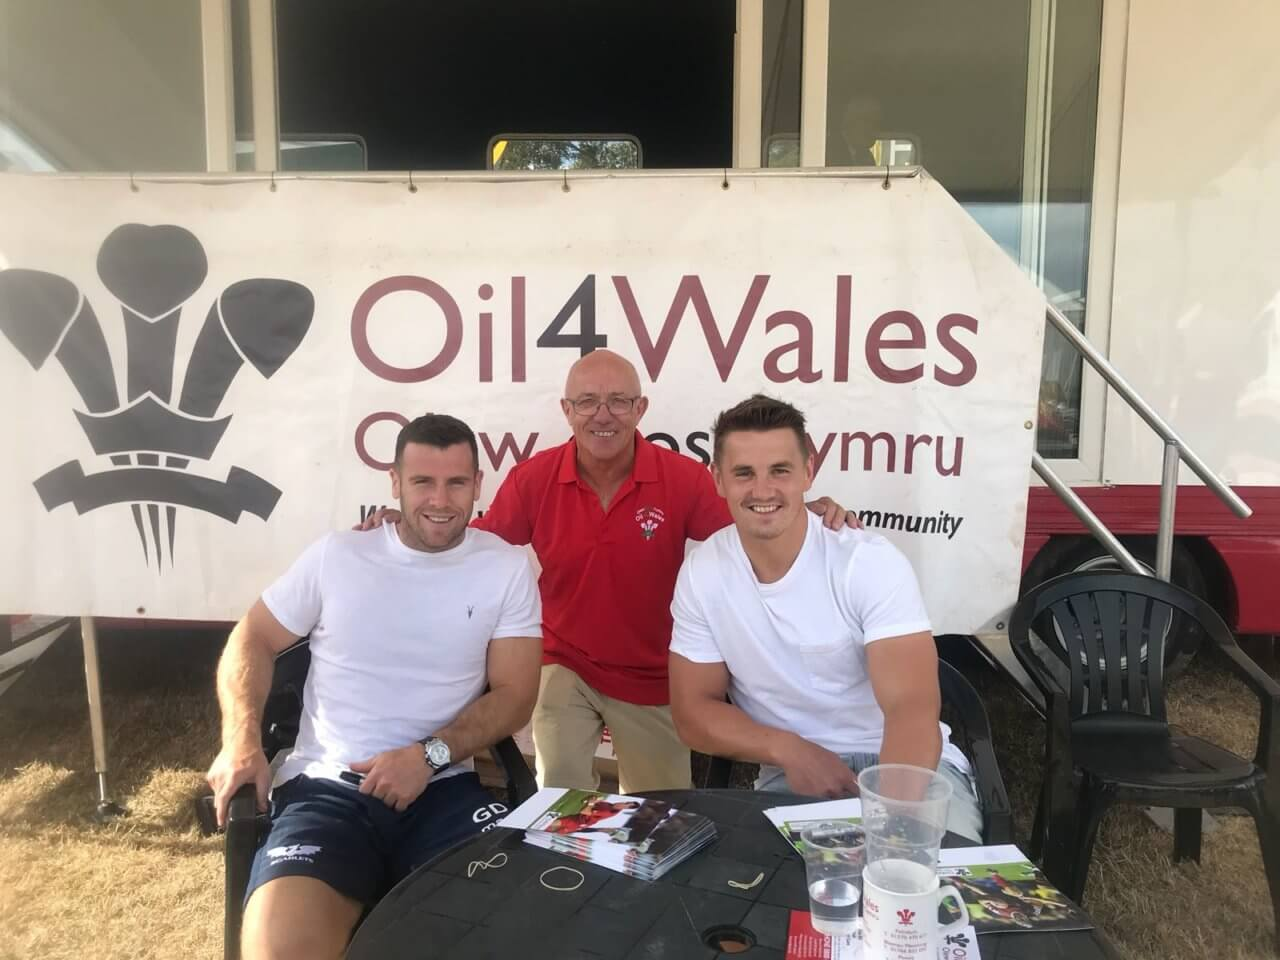 https://www.oil4wales.co.uk/wp-content/uploads/2019/07/WhatsApp-Image-2018-08-08-at-17.10.02-1280x960.jpeg